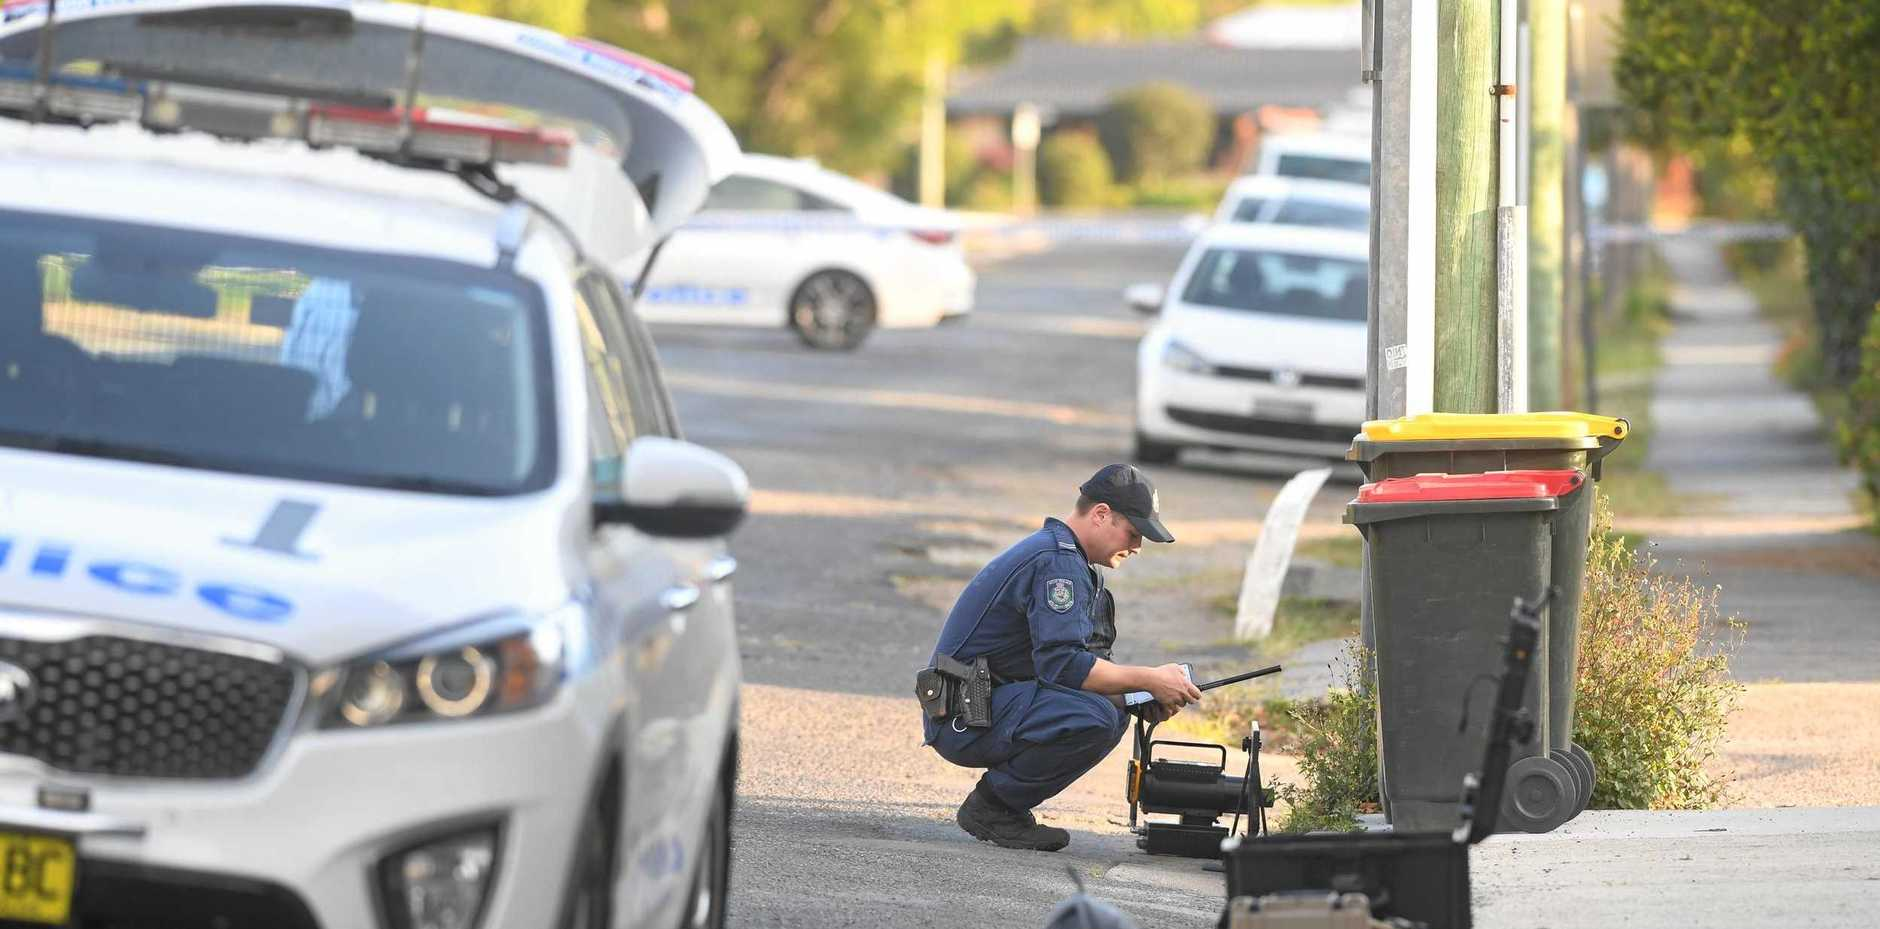 Bomb threat in Mullumbimby near the council chambers where emergency services closed off streets and called in Sydney bomb disposaL.